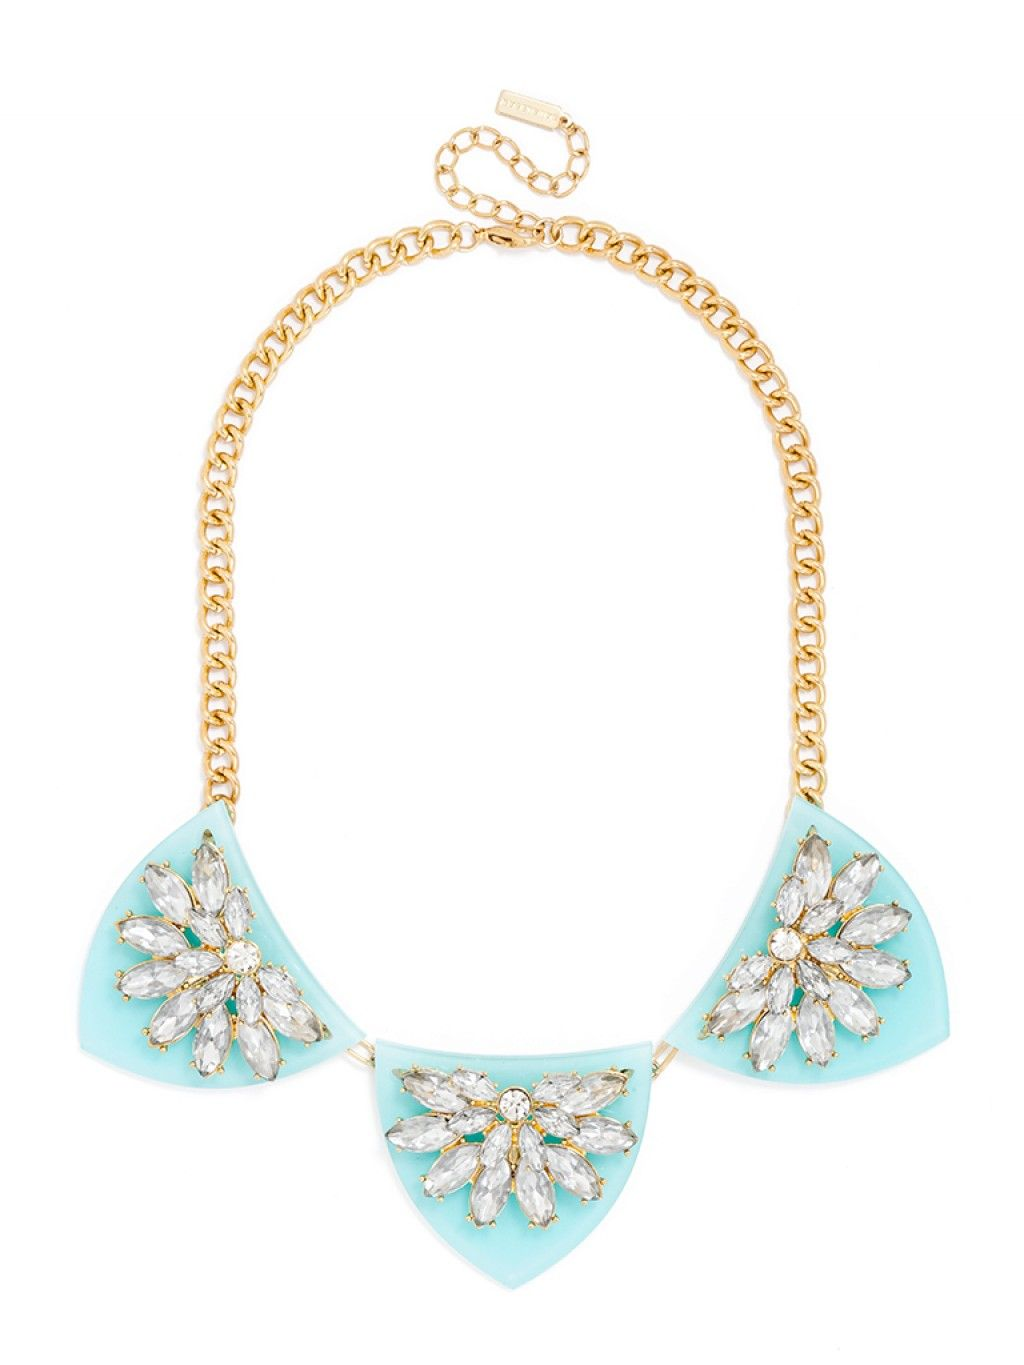 db51a15d4 HI THERE, halcyon acrylic bib necklace // baublebar   coveted ...